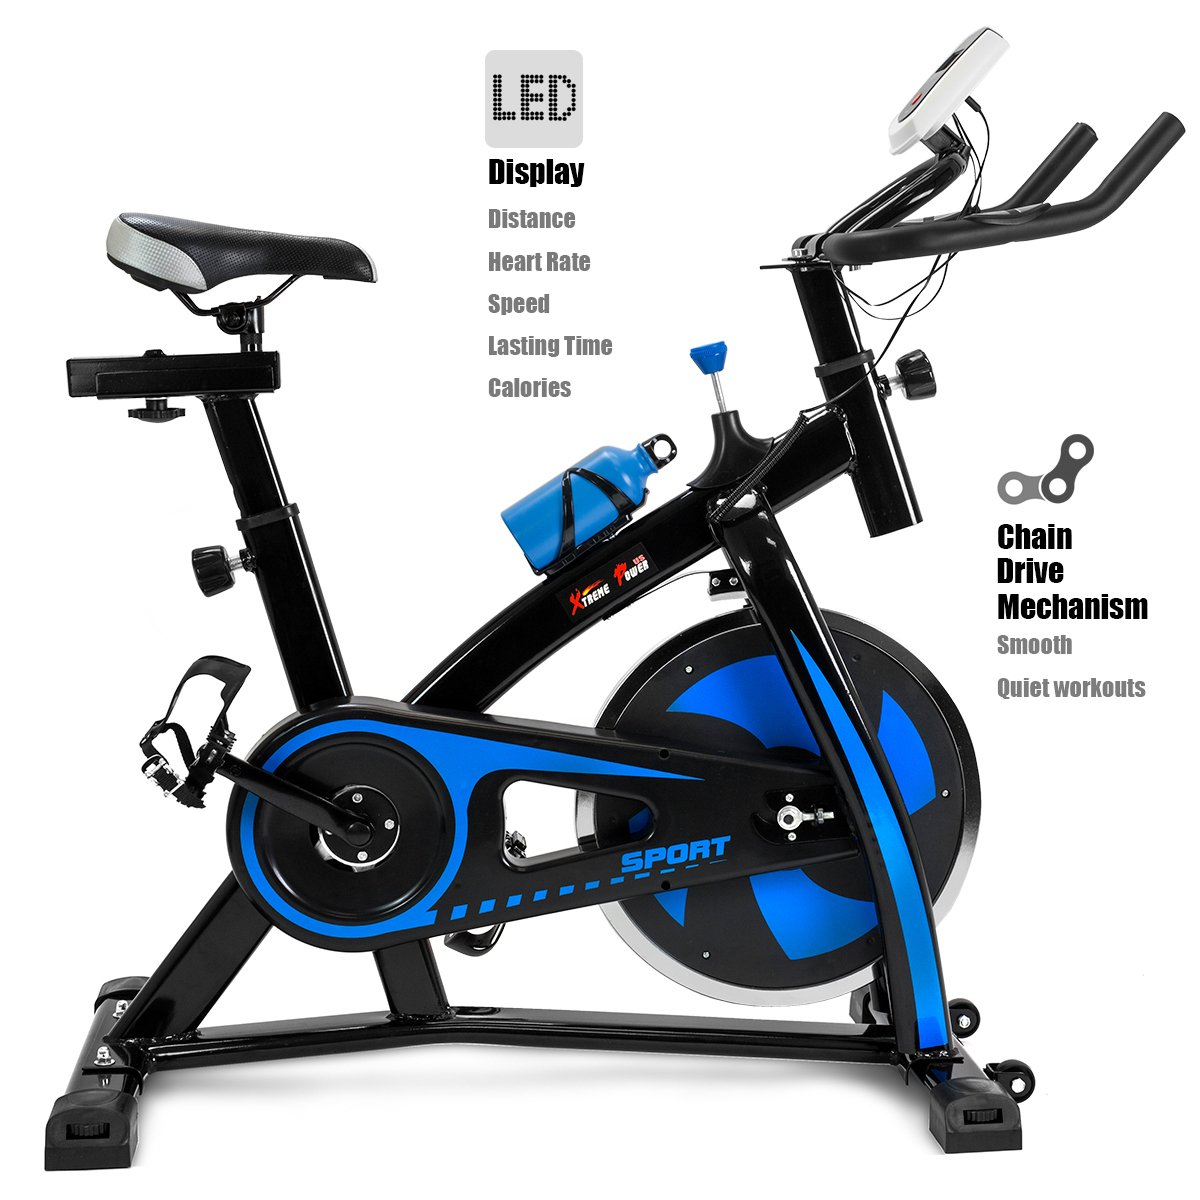 Stationary Bikes With LCD